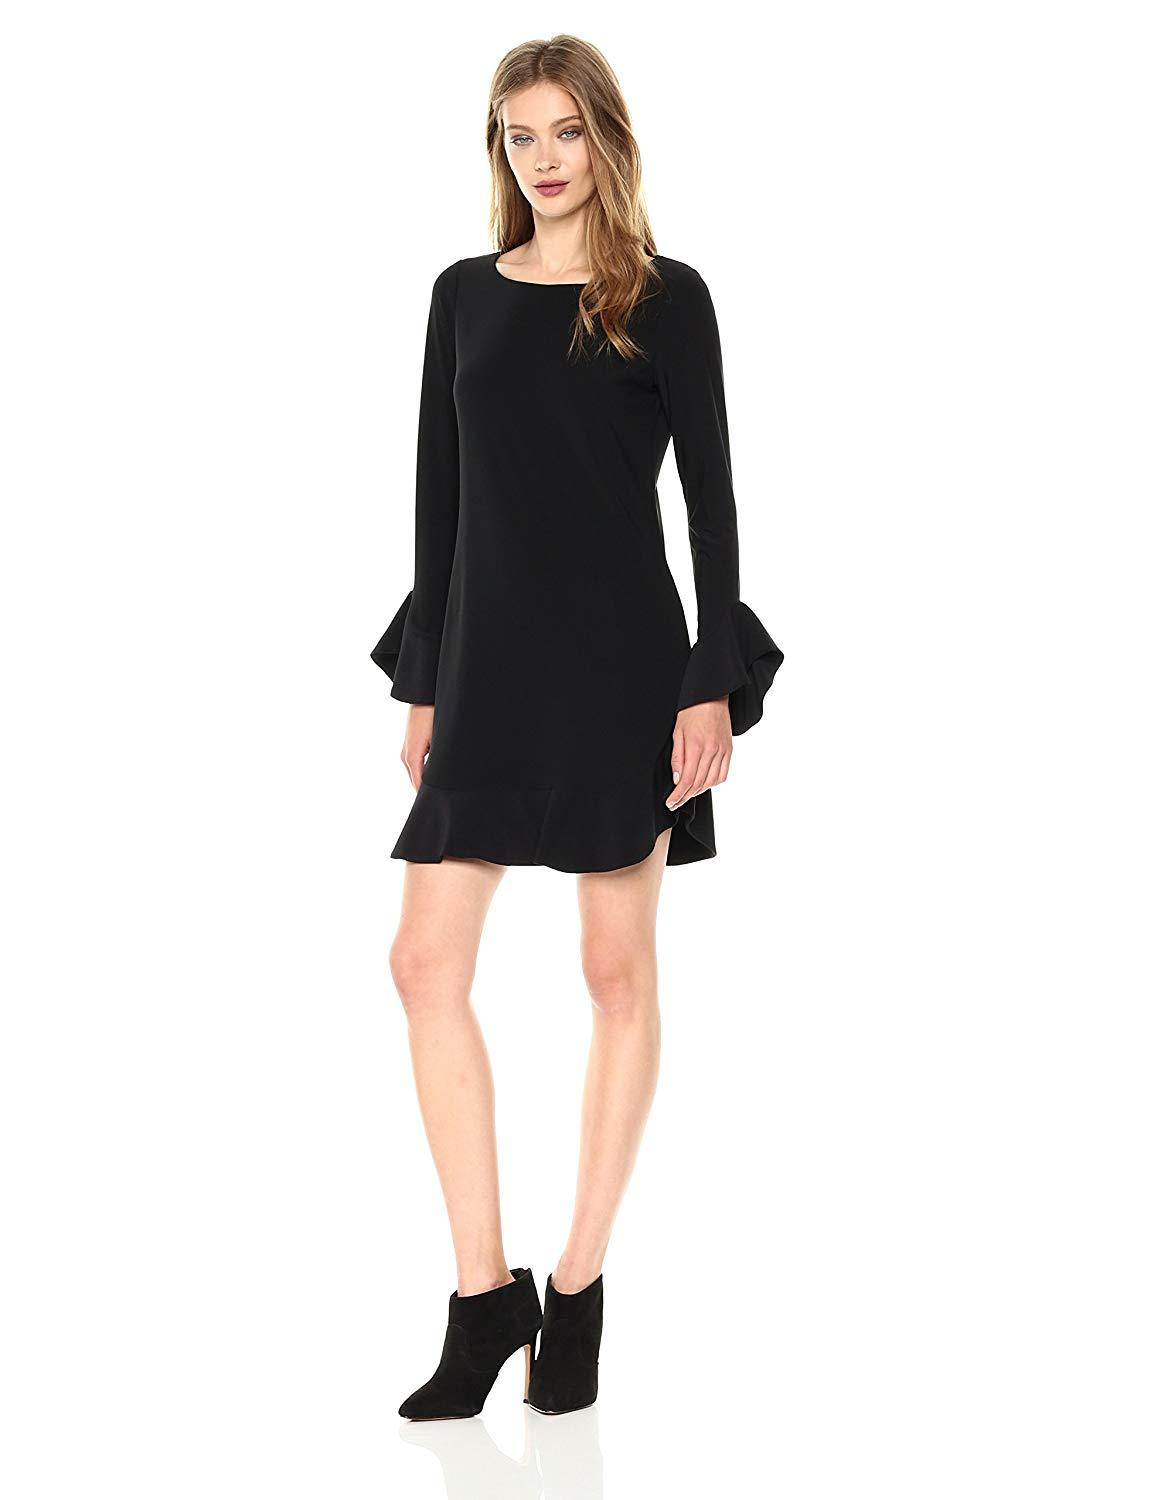 Laundry - 97F34310 Flounce Cuff Long Sleeves Solid Jersey Shift Dress In Black